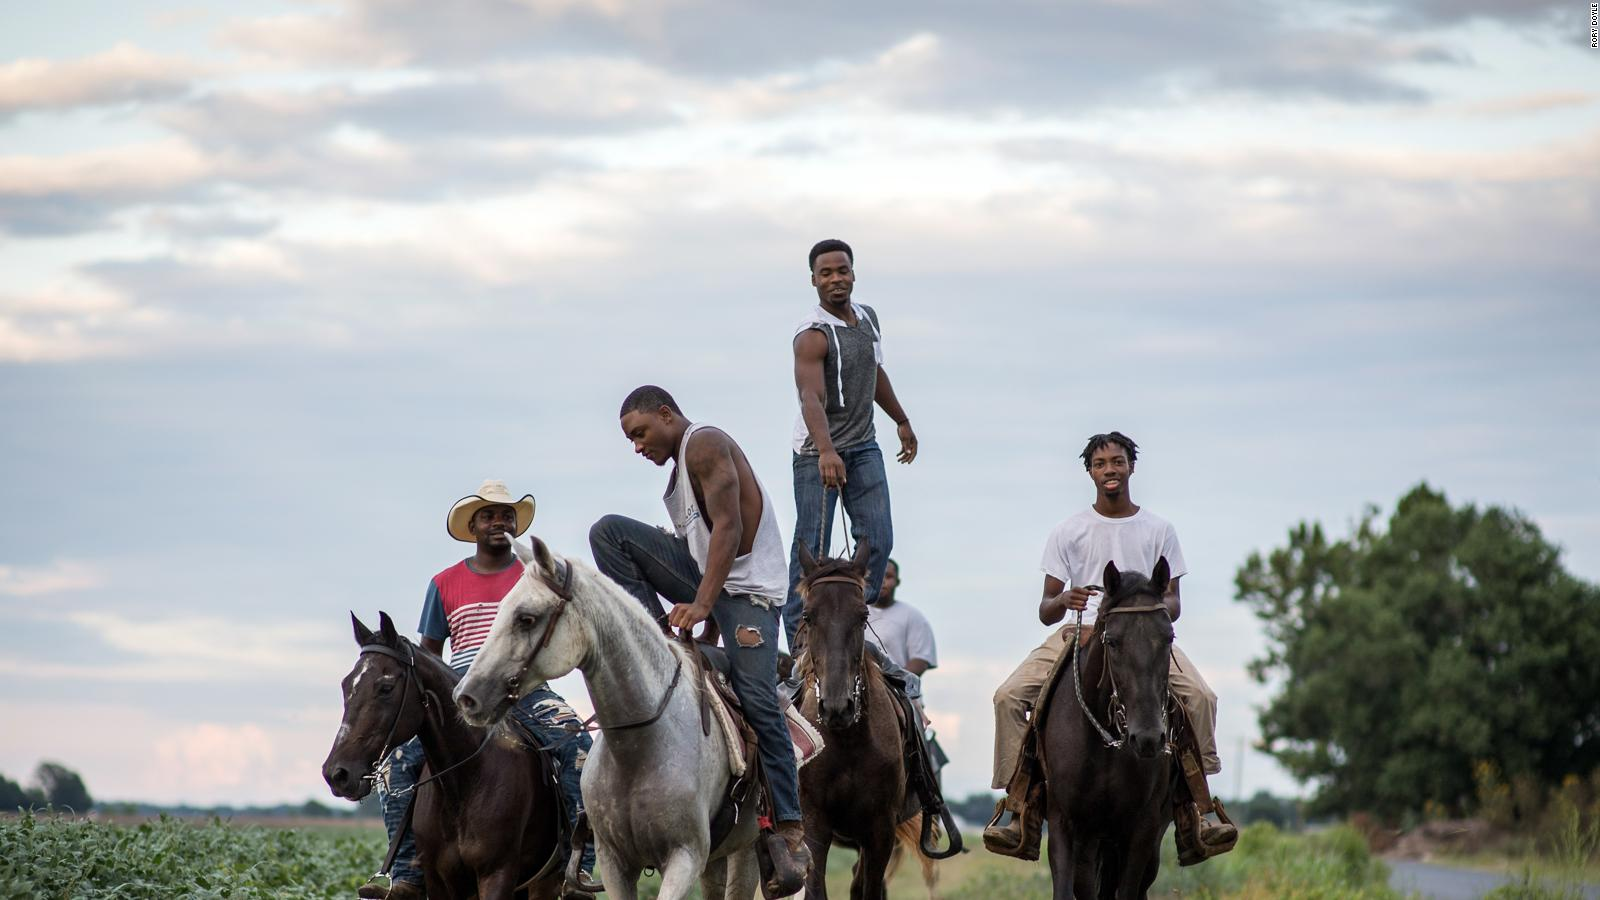 Rory Doyle S Delta Hill Riders Focuses On Black Cowboy Culture